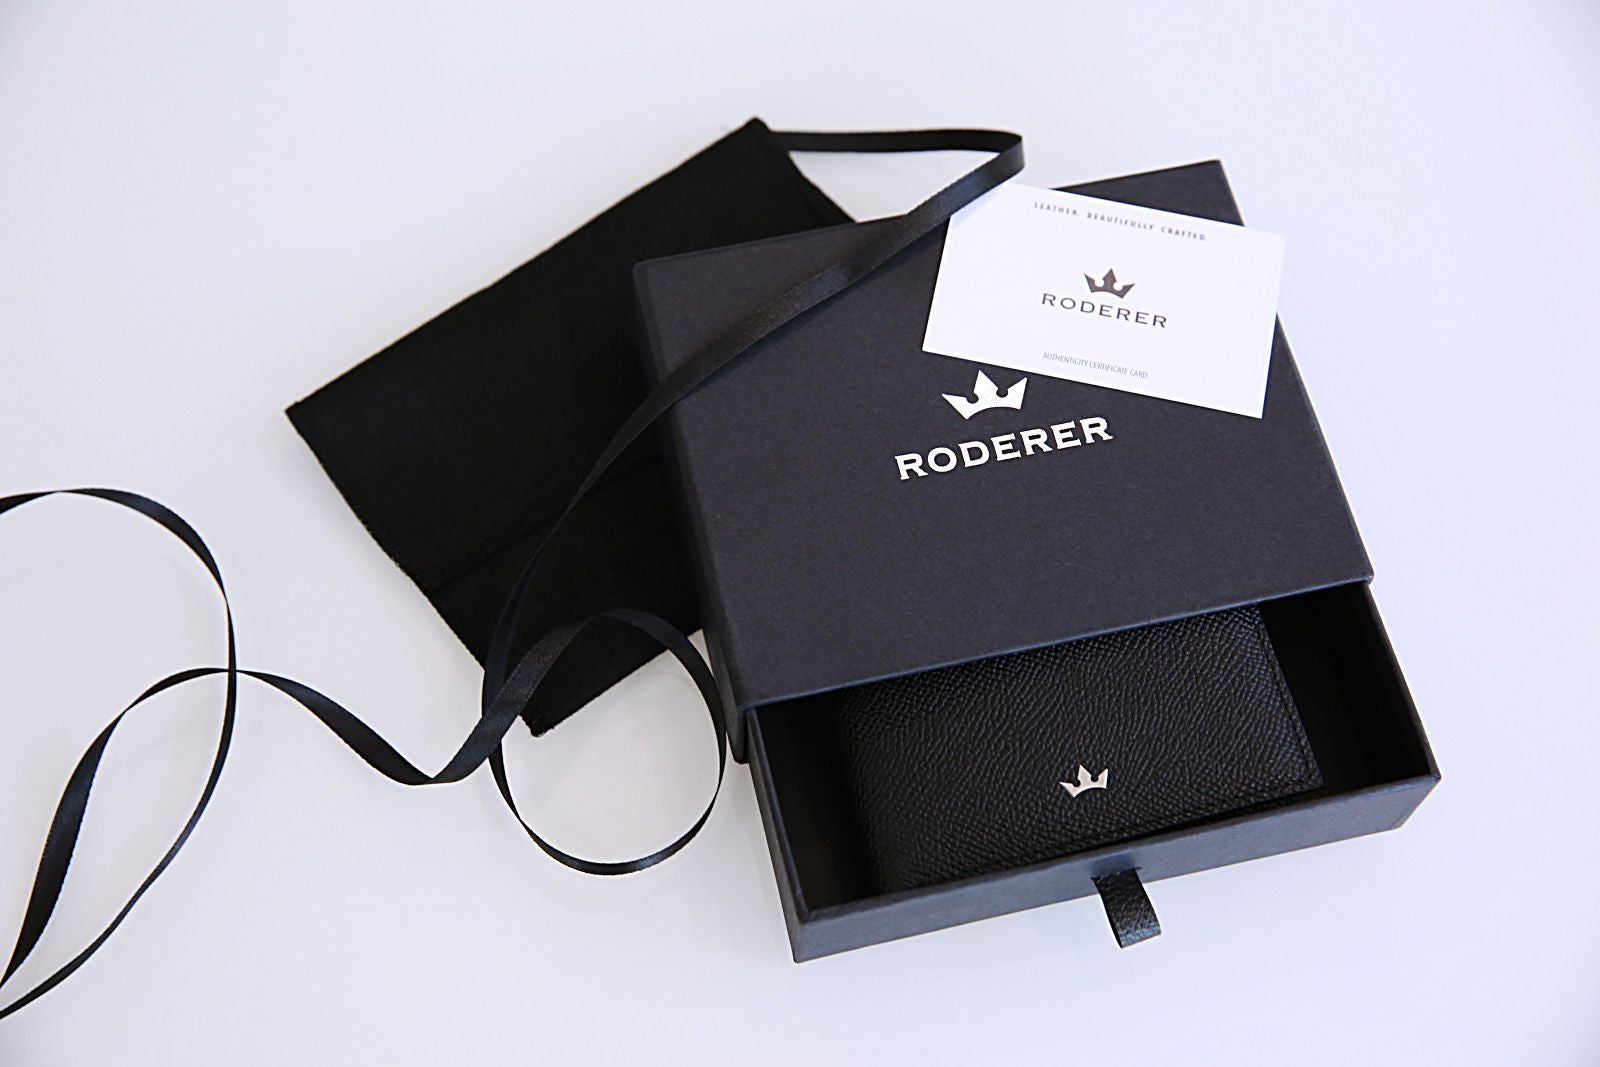 Roderer Wallet Packaging